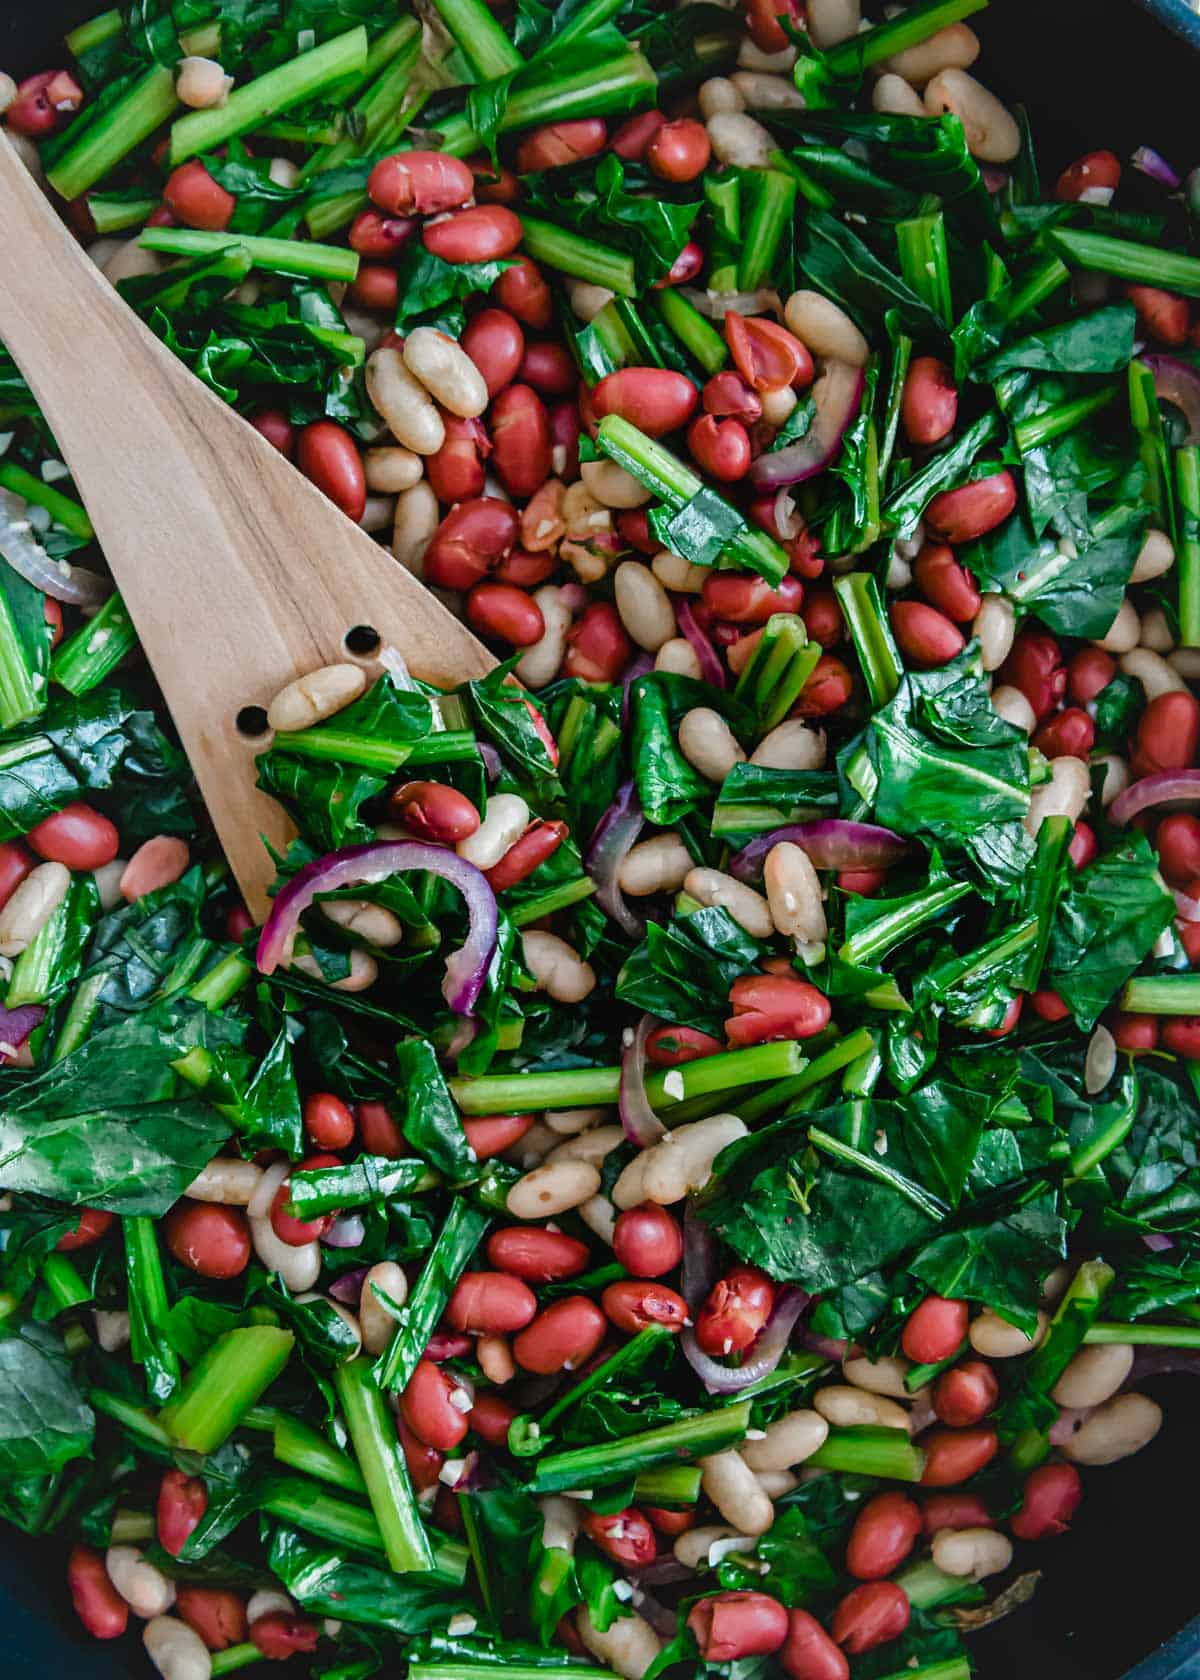 Red onion, cannellini beans, red beans and dandelion greens are sautéed together for an easy vegetarian skillet meal.